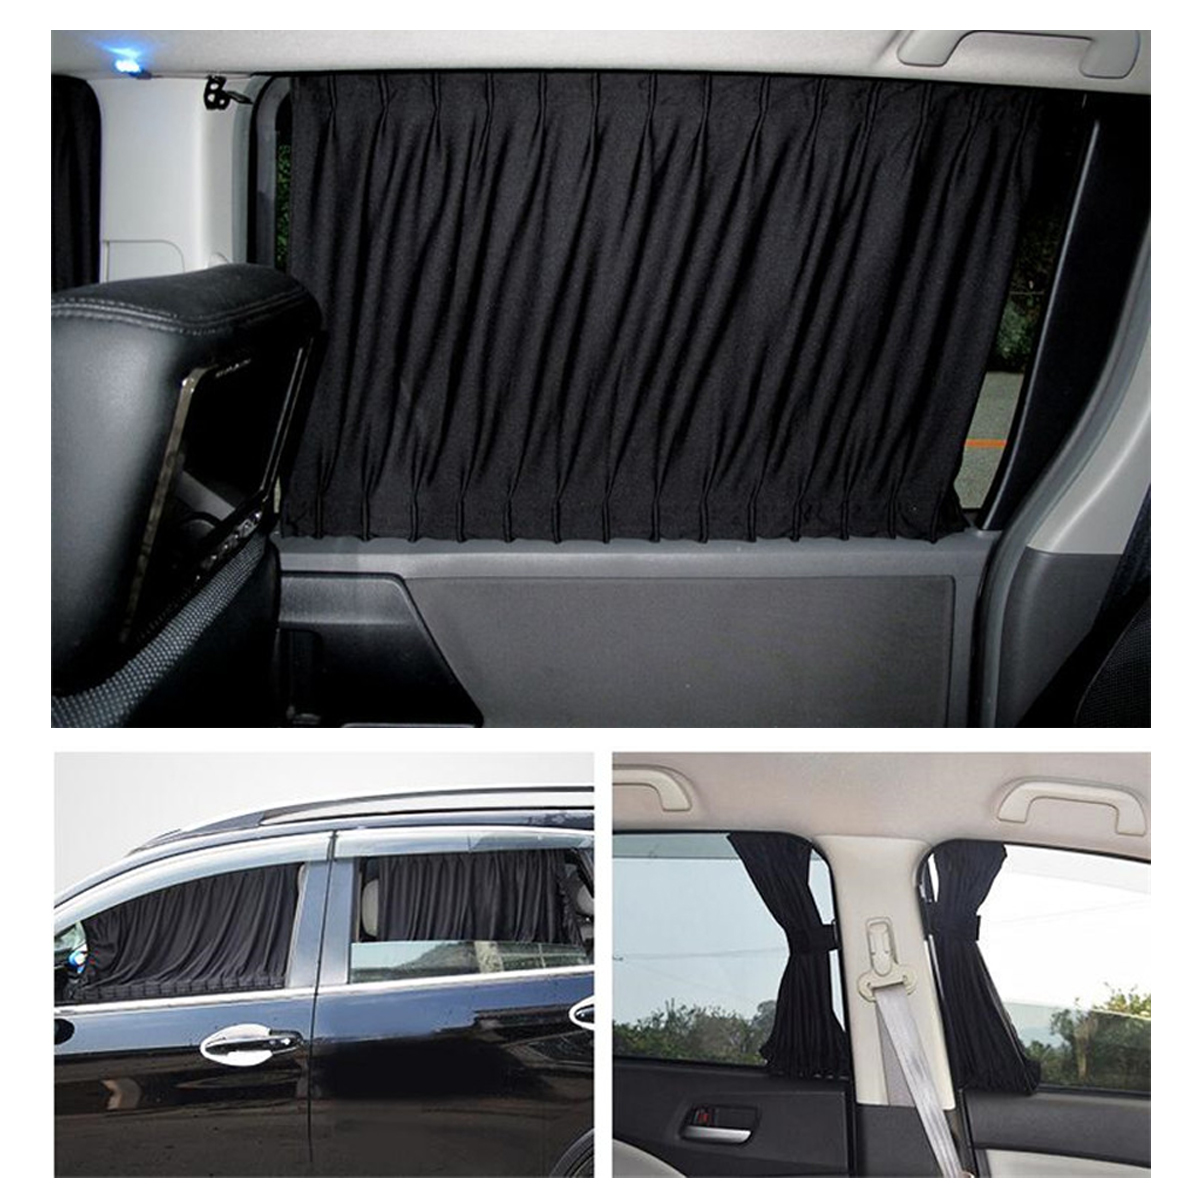 2pcs Car Curtain Side Window Shield Protector Sliding Easy Install Sun Visor Blinds Cover Cortinas Coche Sunshade